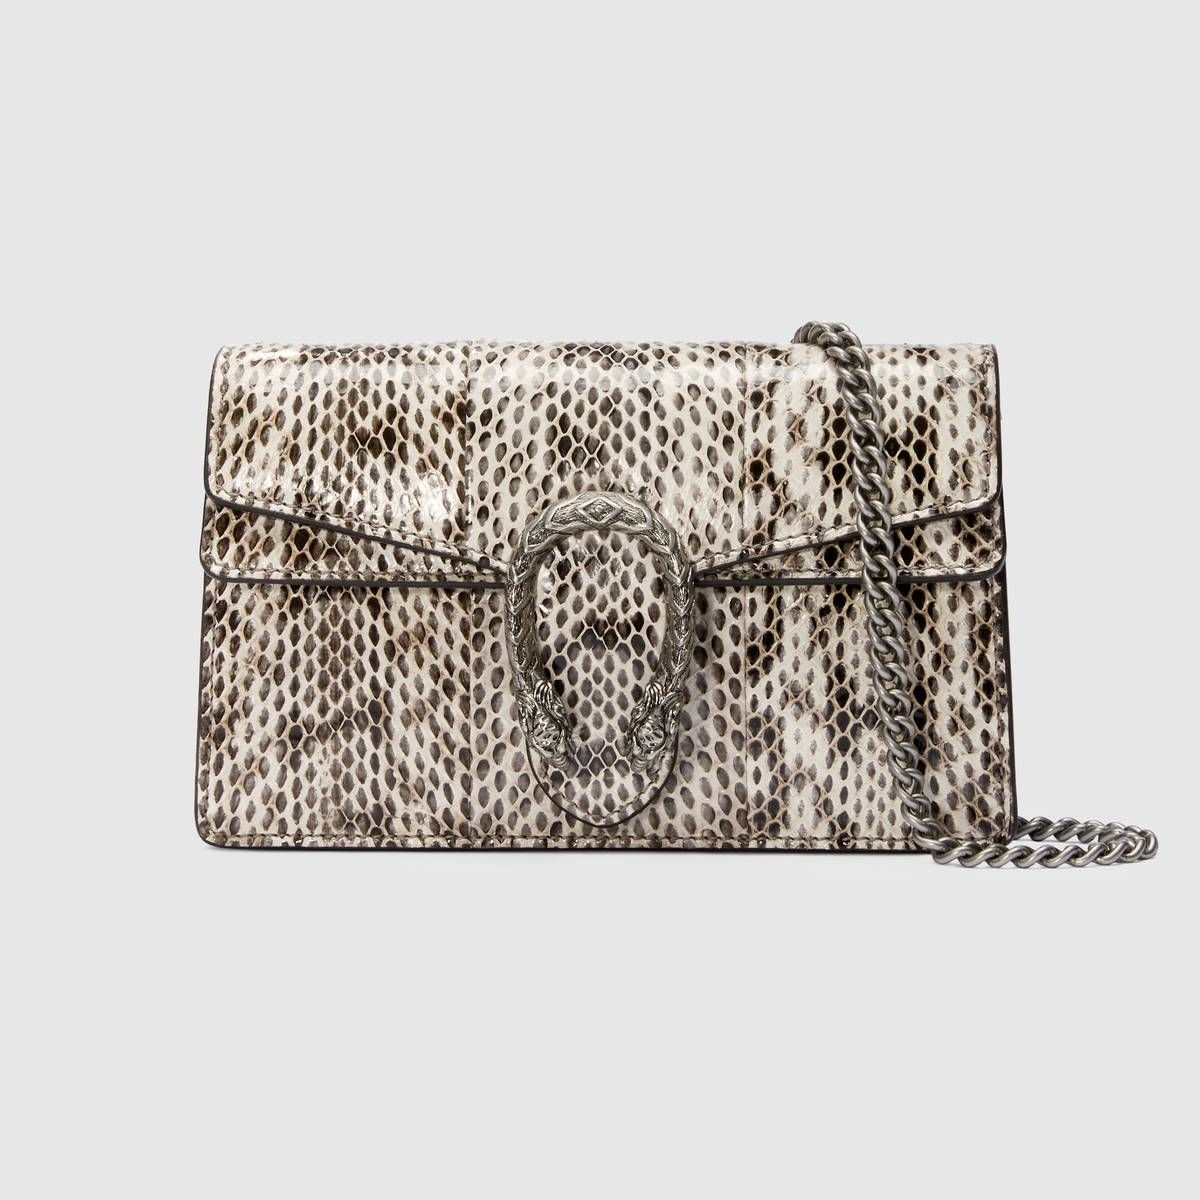 1b74b10fd35d Shop the Dionysus super mini leather bag by Gucci. Made in resistant  textured leather, the structured Dionysus super mini bag is completed with  a tiger head ...